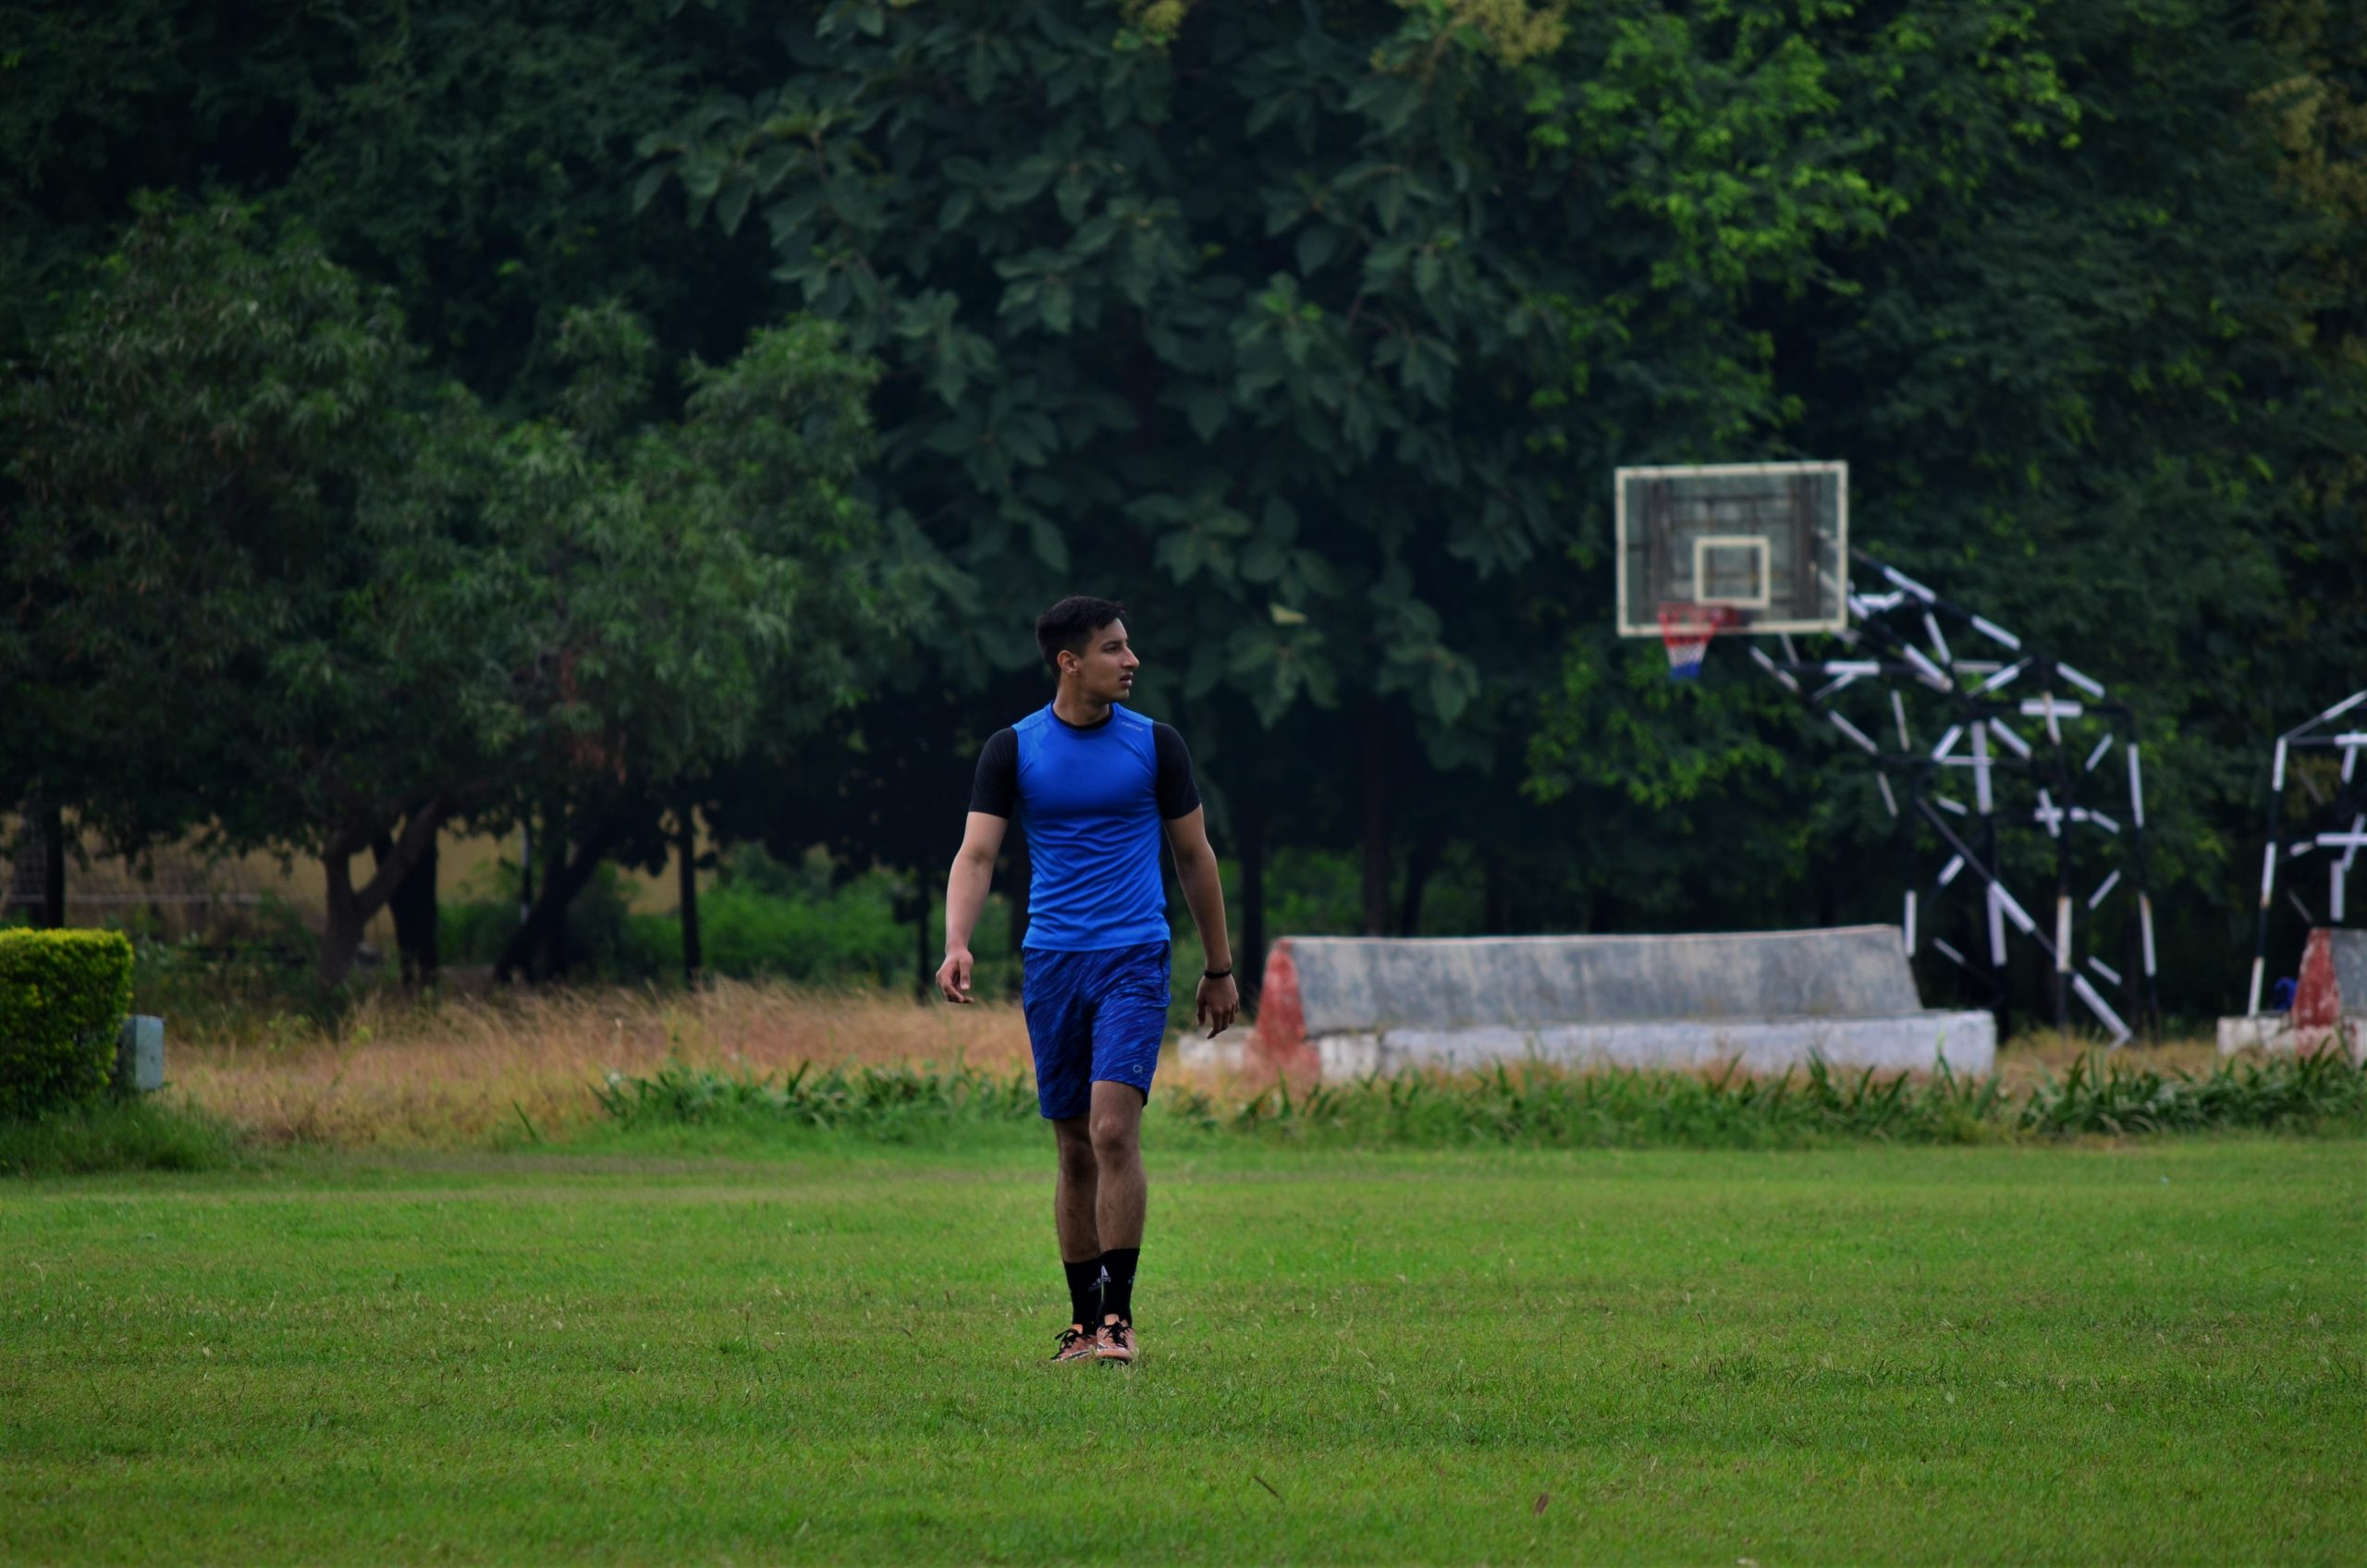 A basketball player walking across the field